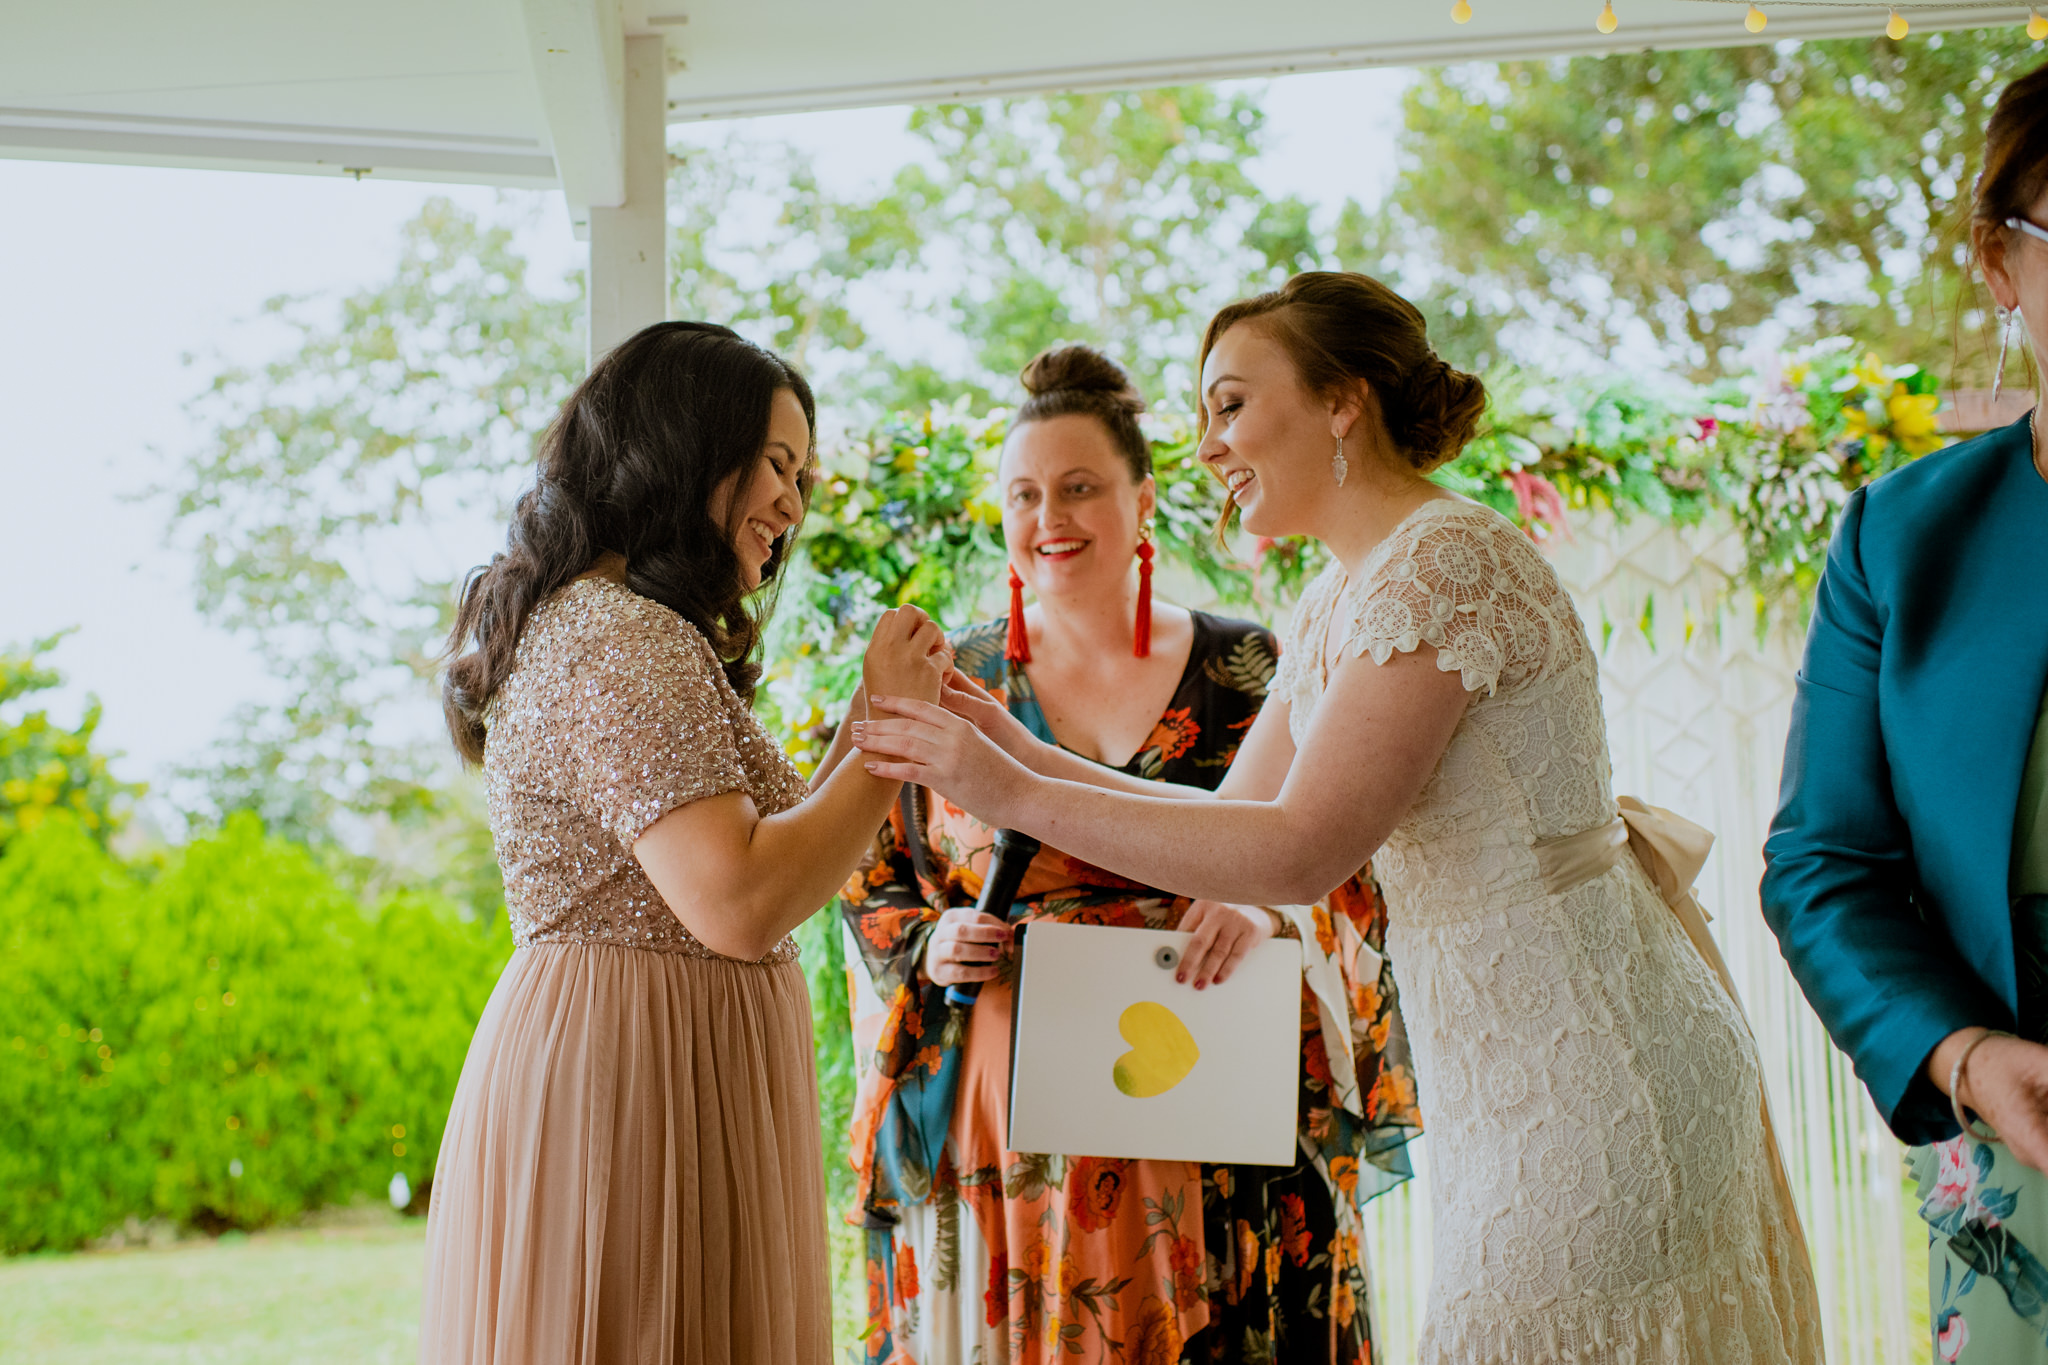 Same sex wedding ceremony with two brides playfully putting on rings